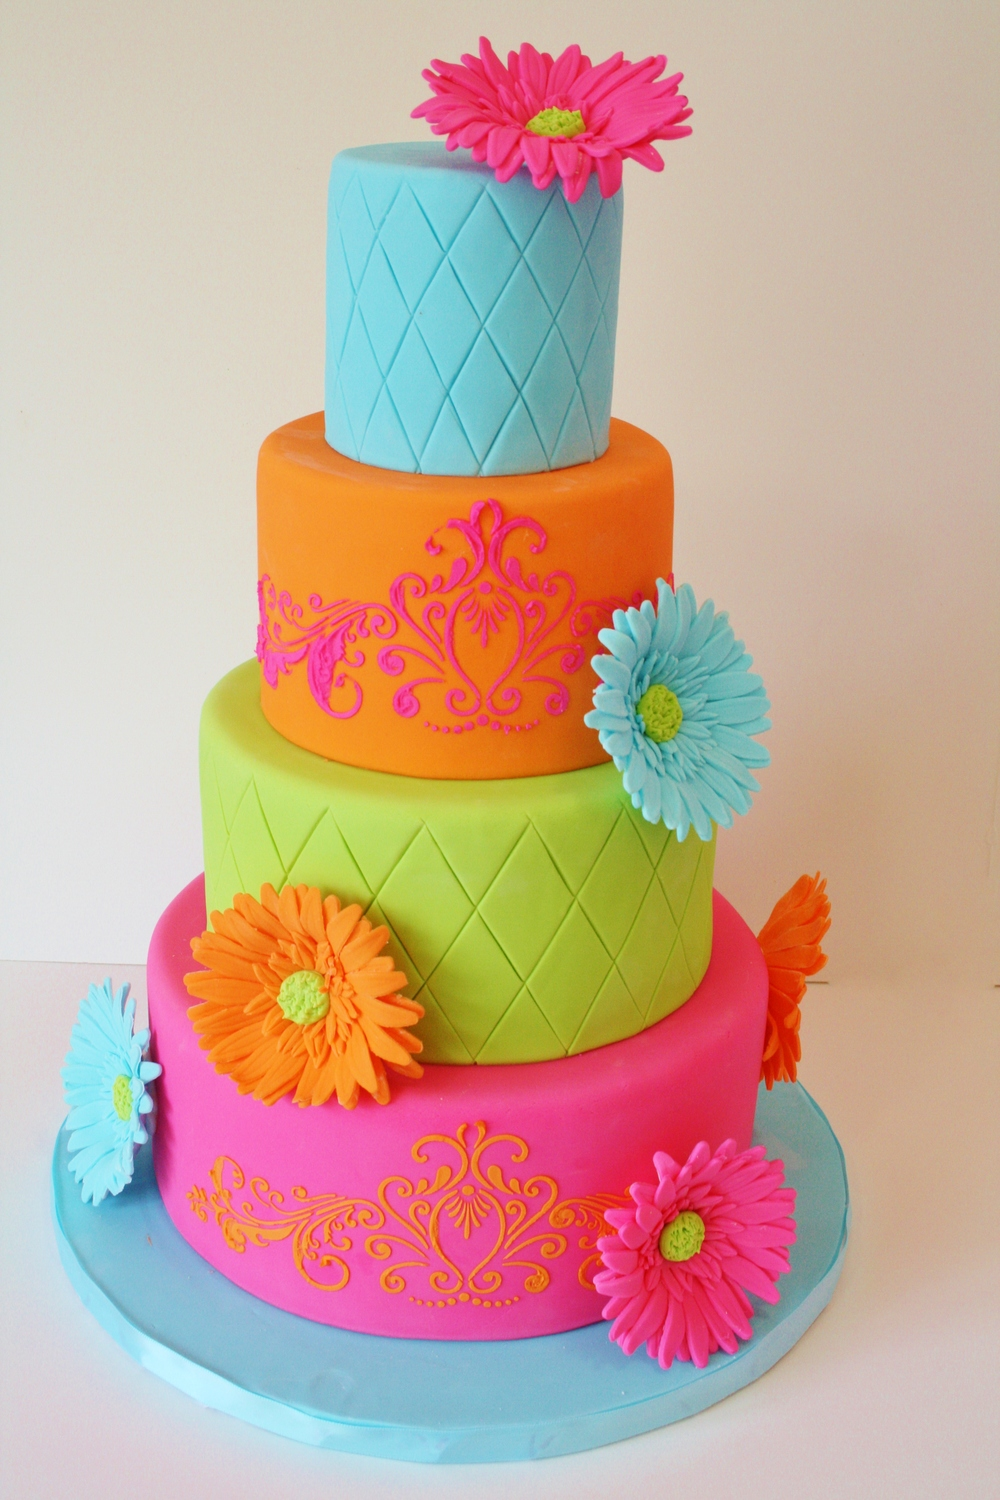 Birthday Cakes New Jersey - Bright Colors Tween Custom Cakes.JPG